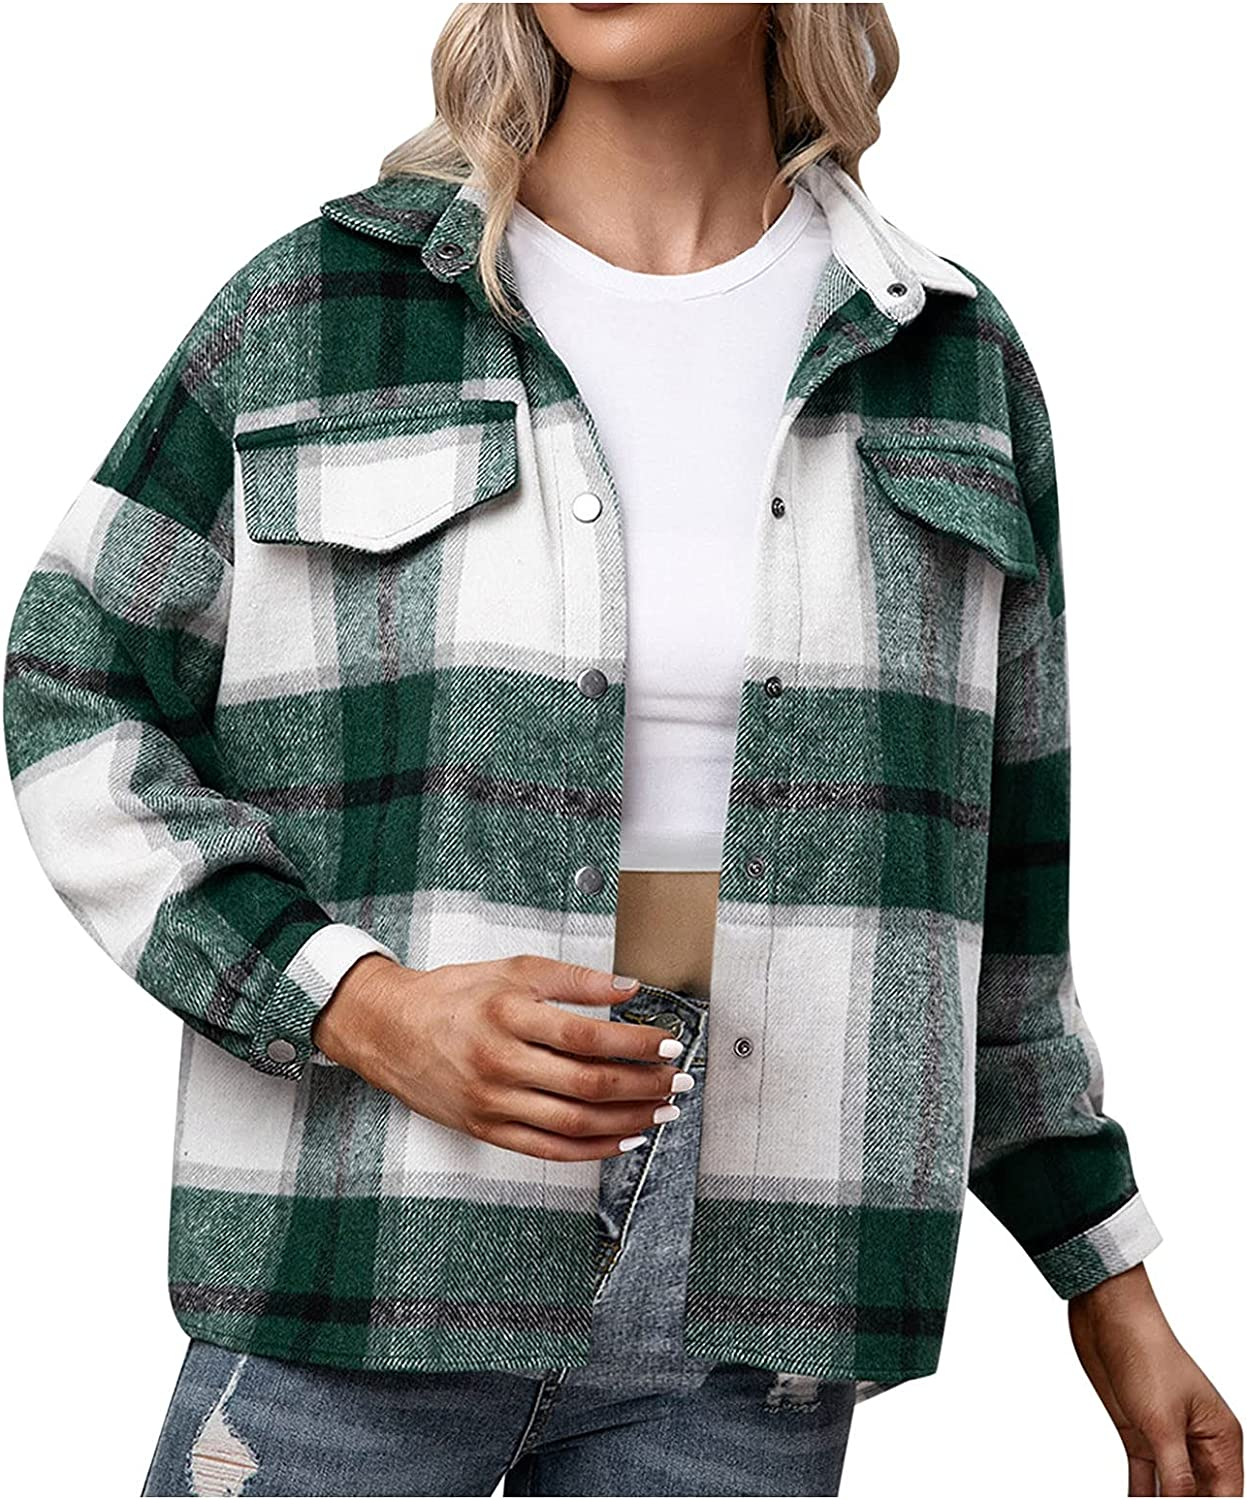 Rovga Women's Casual Christmas Plaid Jacket Long Sleeve Lapel Buttons Down Plush Winter Warm Trench Coat Oversize